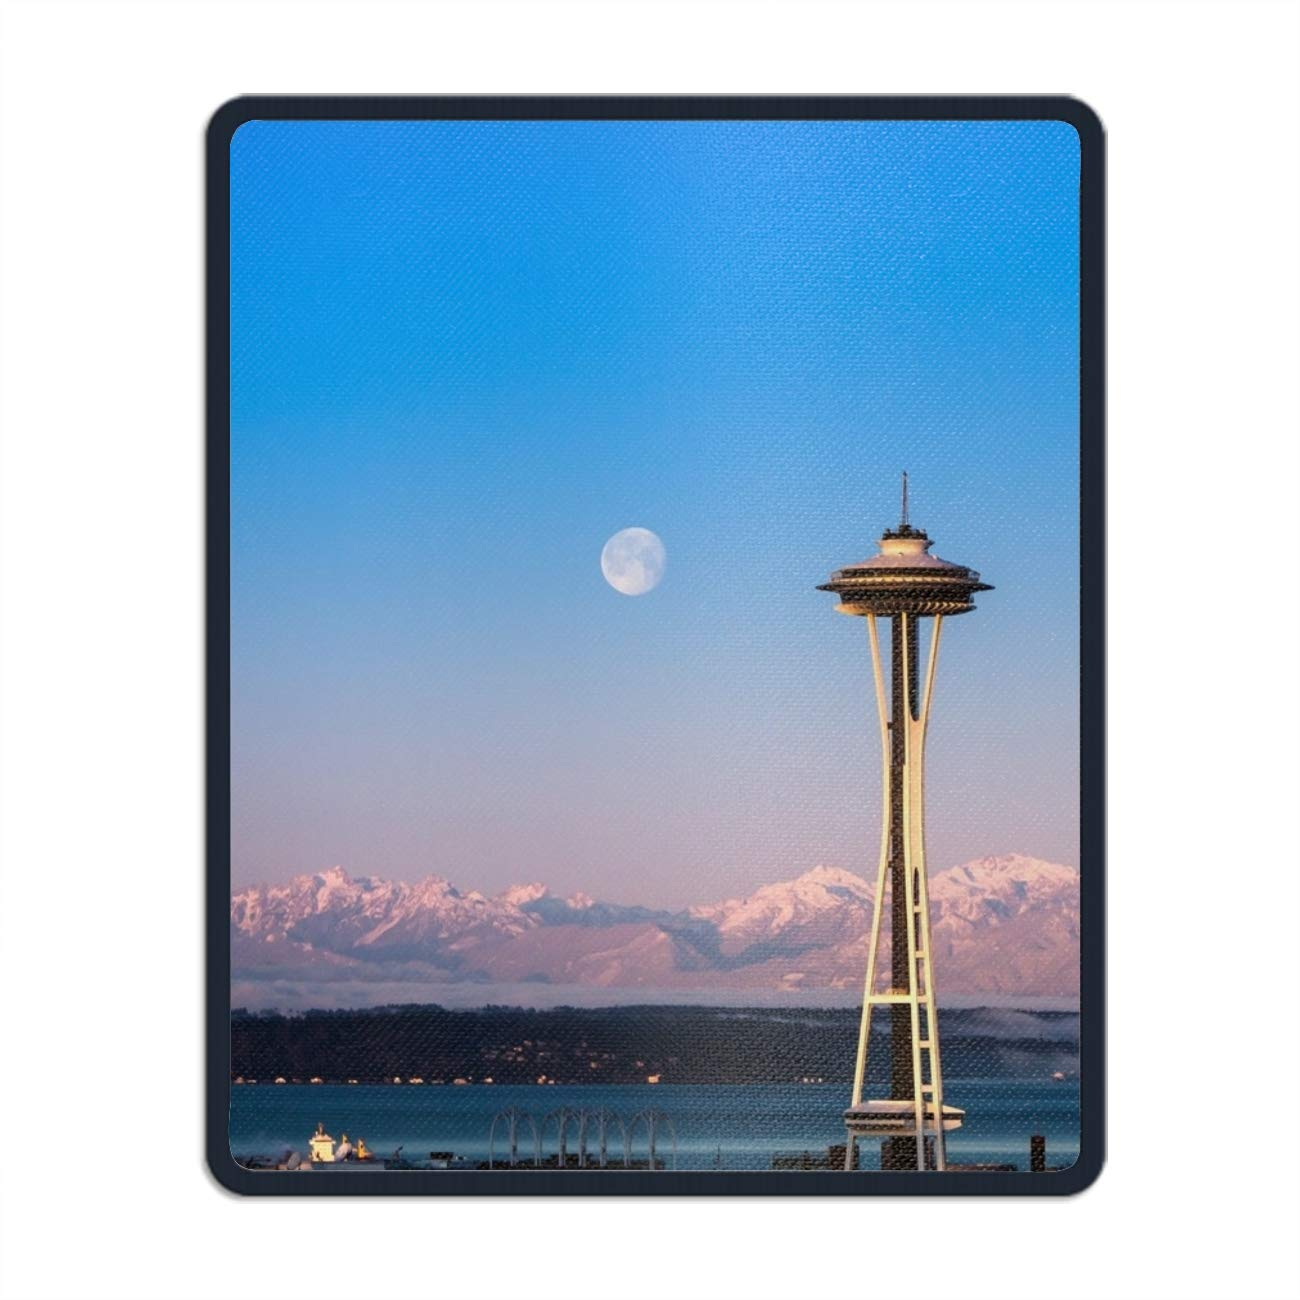 Home, Furniture & DIY Full Moon Over Mountains From The Sea Mouse Mat Bar Coasters Pad & Coaster